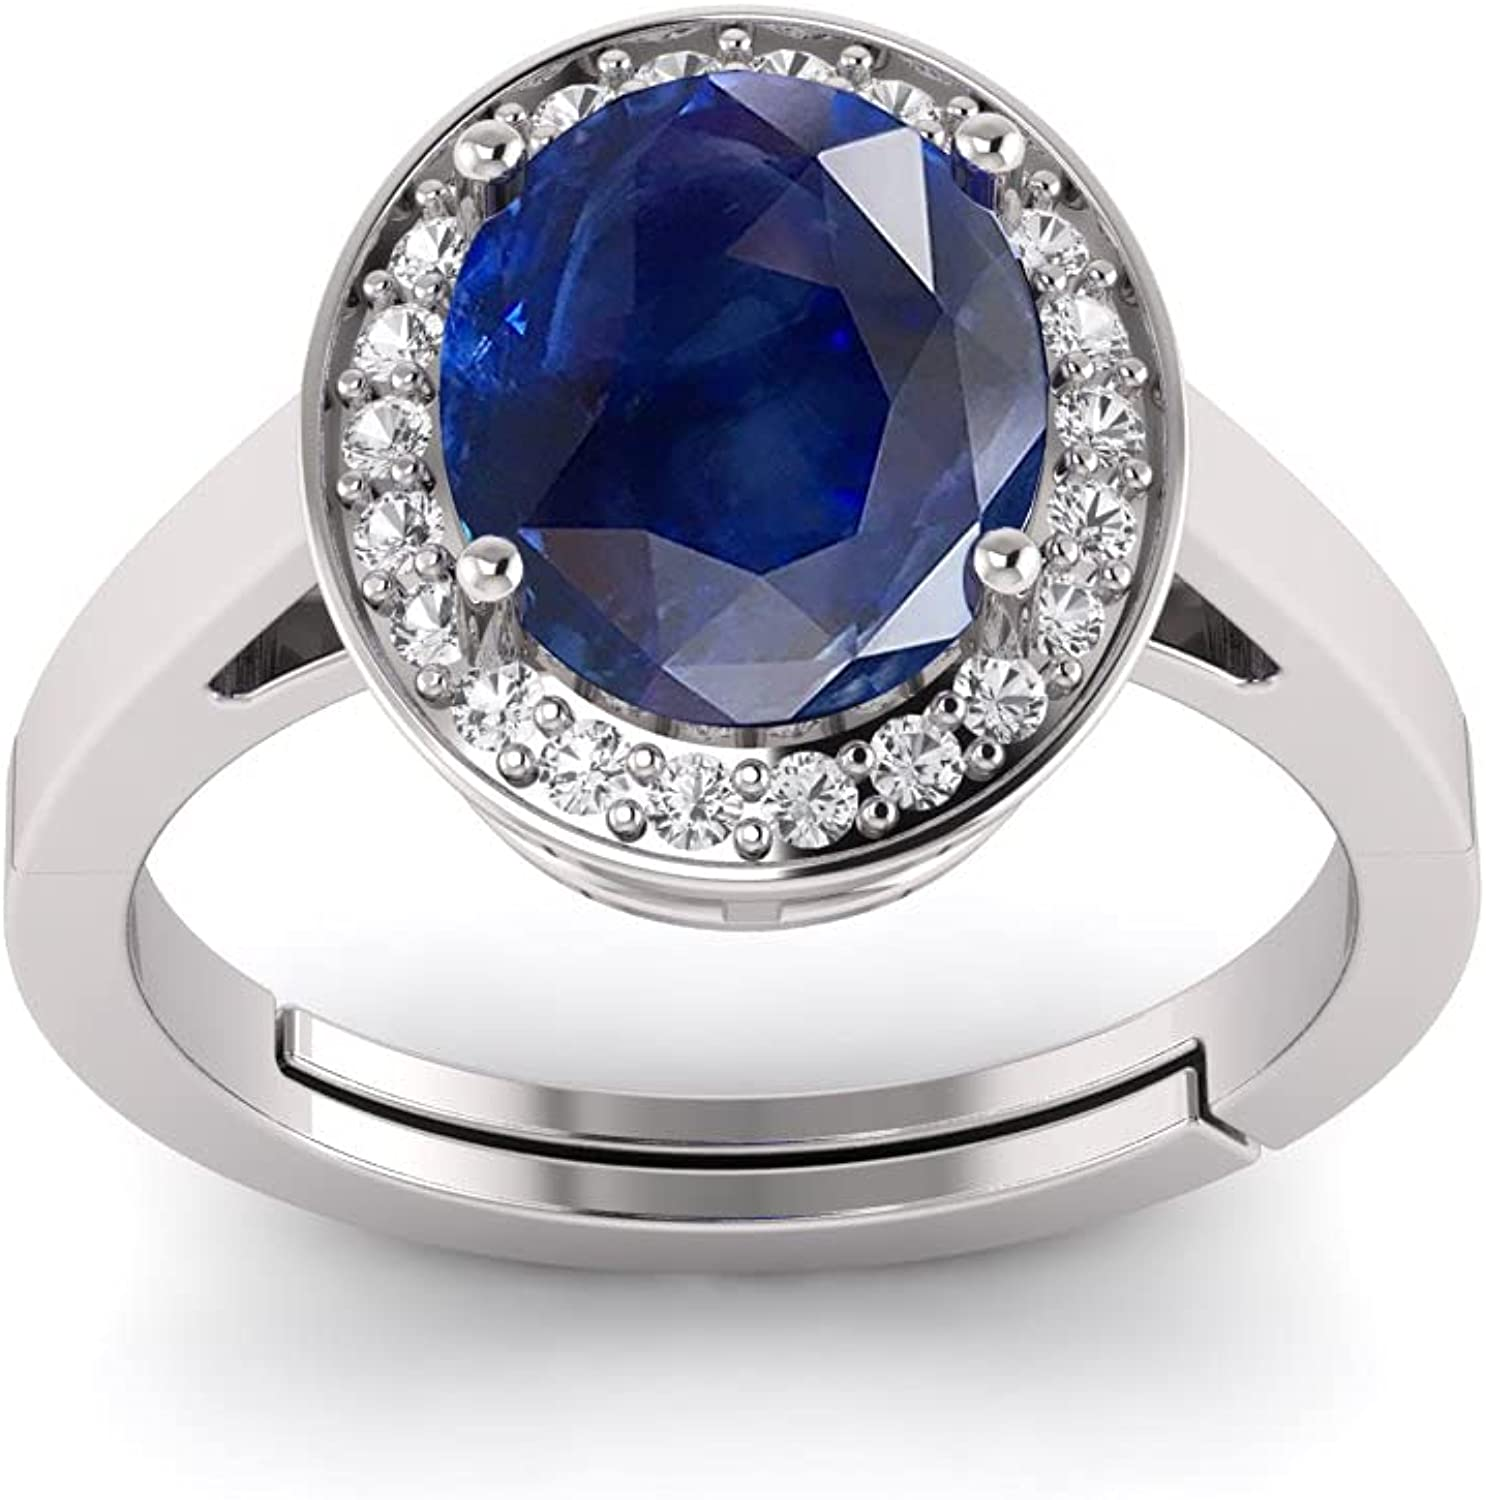 Sales of SALE items from new works LMDPRAJAPATIS 925 Sterling Silver Blue discount Women's Sapphire Natural